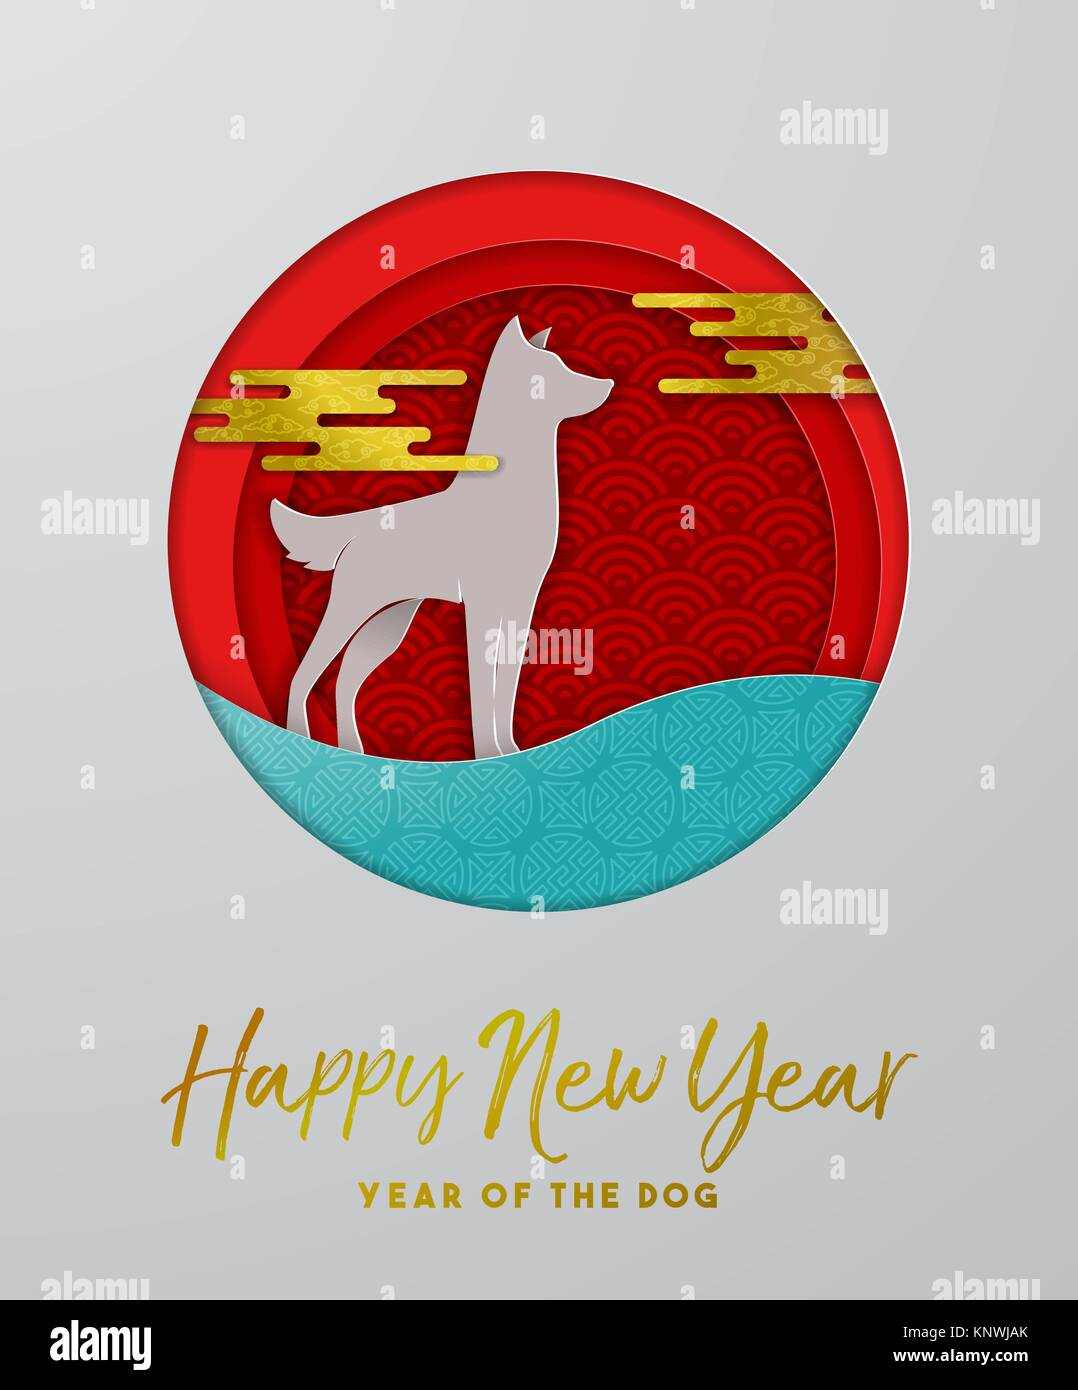 Happy chinese new year 2018 greeting card cutout illustration happy chinese new year 2018 greeting card cutout illustration modern style dog paper cut art with traditional asian decoration in gold color eps10 v kristyandbryce Images